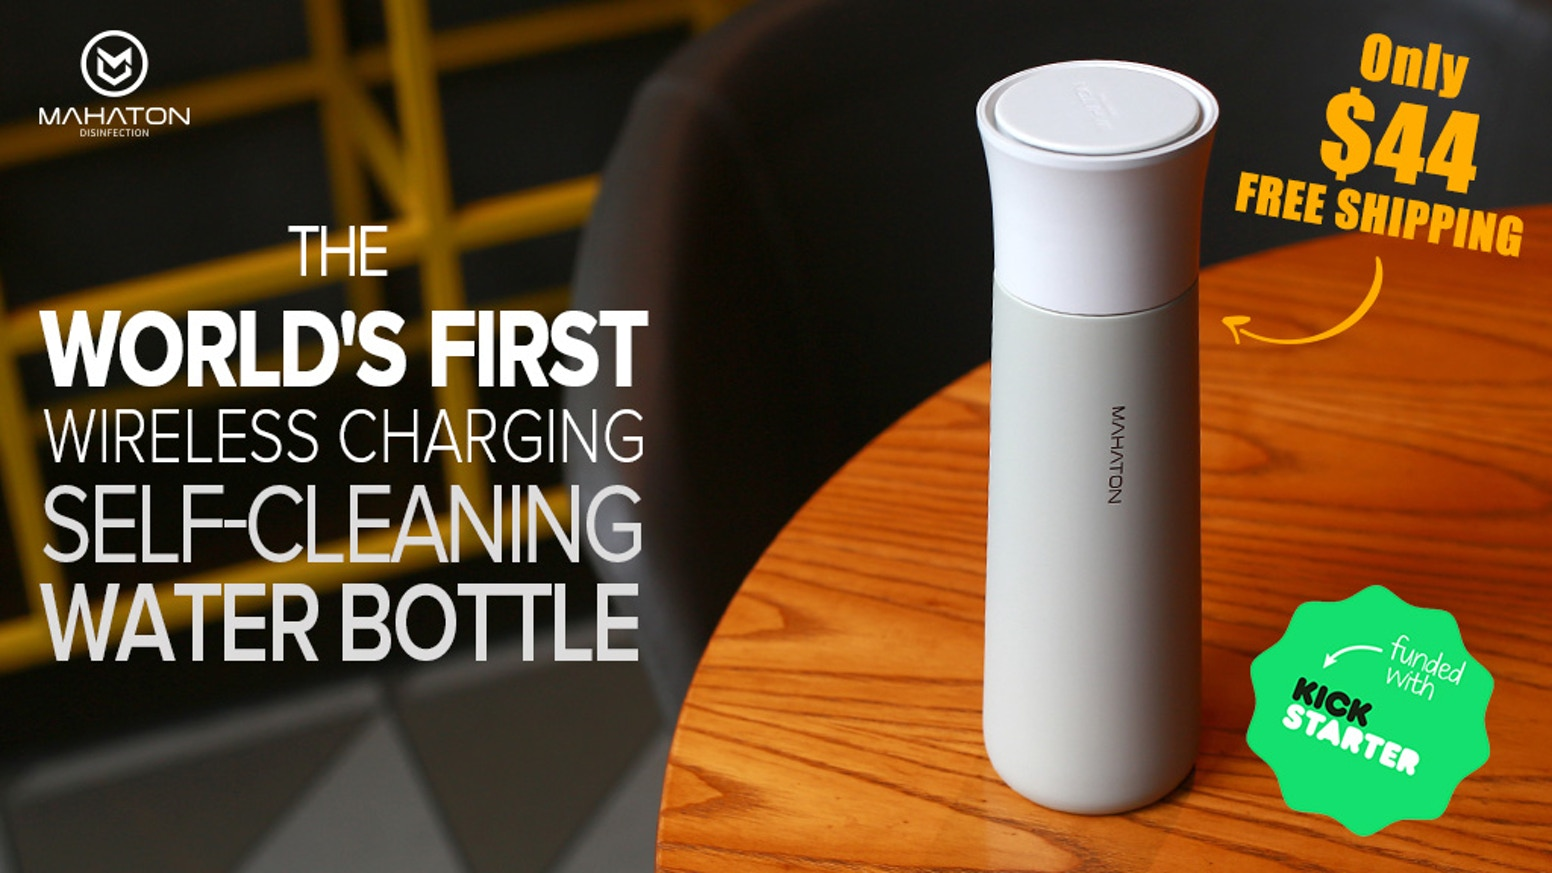 The world's first wireless charging self-cleaning  water bottle, inspired by modern architecture. Keeping your water pure and odorless.